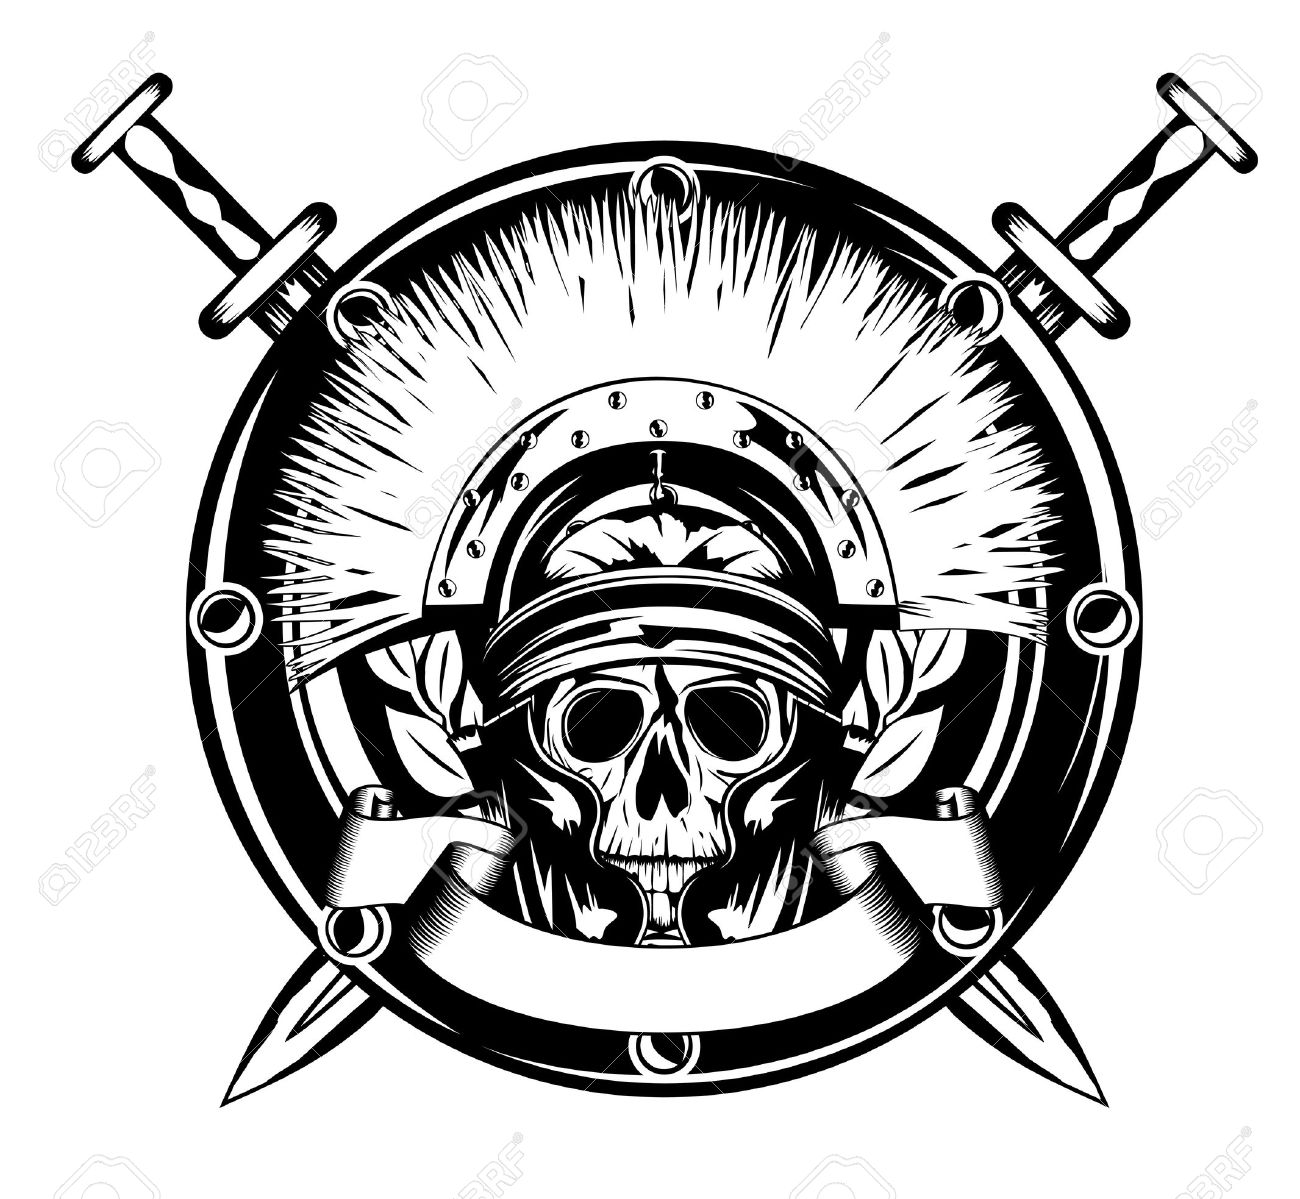 http://previews.123rf.com/images/ss1001/ss10011203/ss1001120300015/12889366-image-skull-in-helmet-and-shield-and-crossed-sword--Stock-Vector.jpg